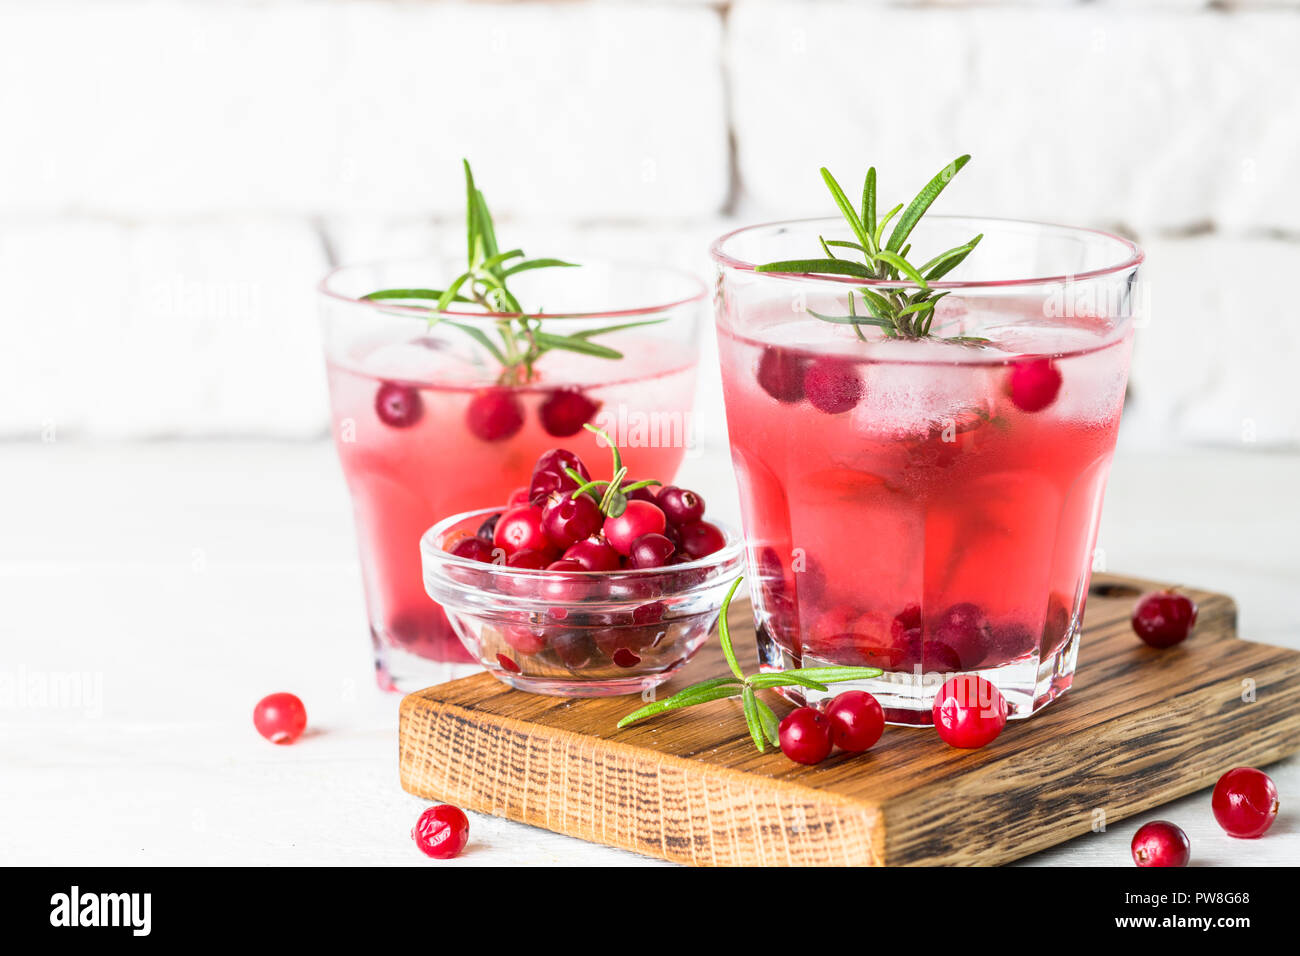 Cocktail with cranberry, vodka, rosemary and ice. - Stock Image